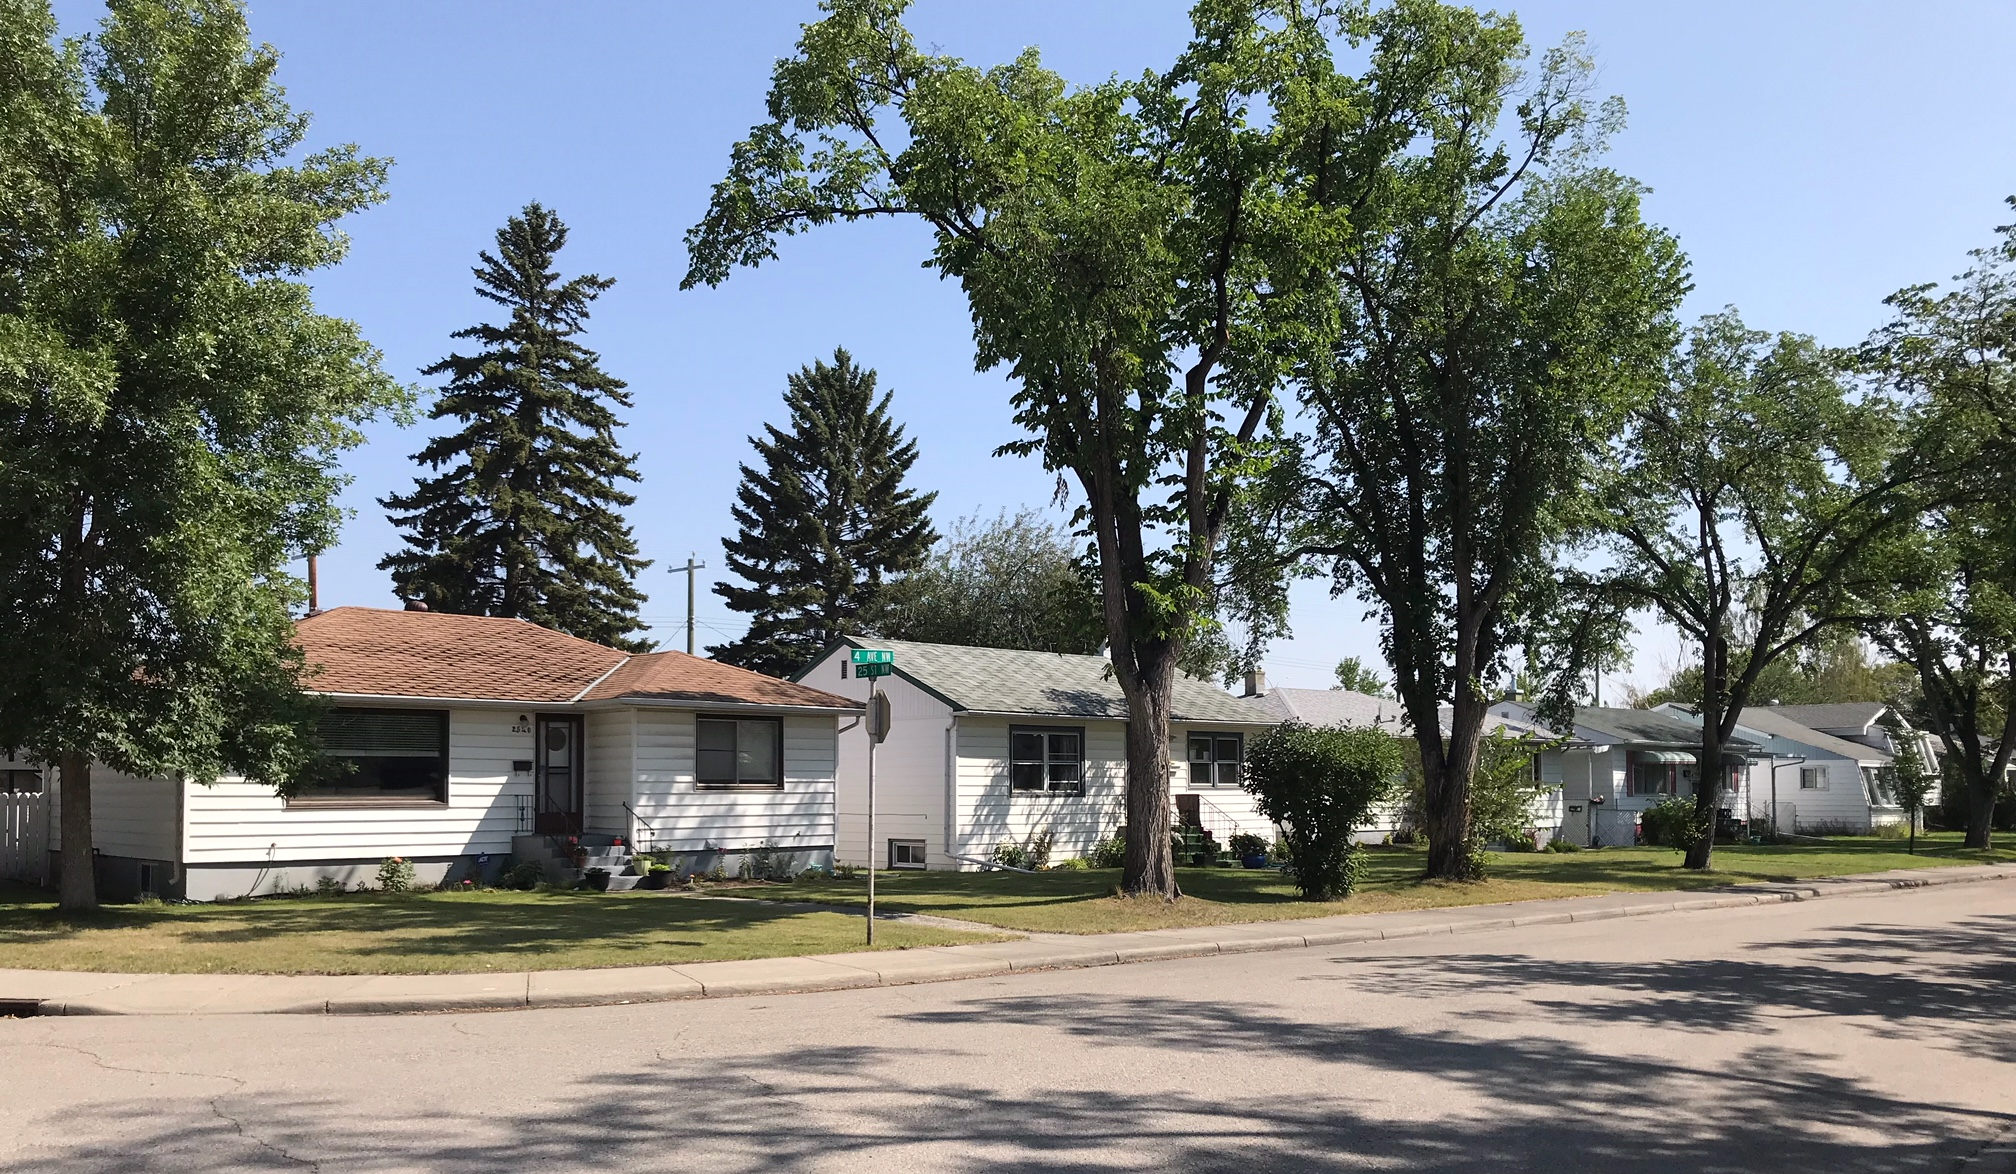 Typical '50s or '60s street with single family, single story homes are large lots. While many once housed 6+ people today they are home for one maybe two people.